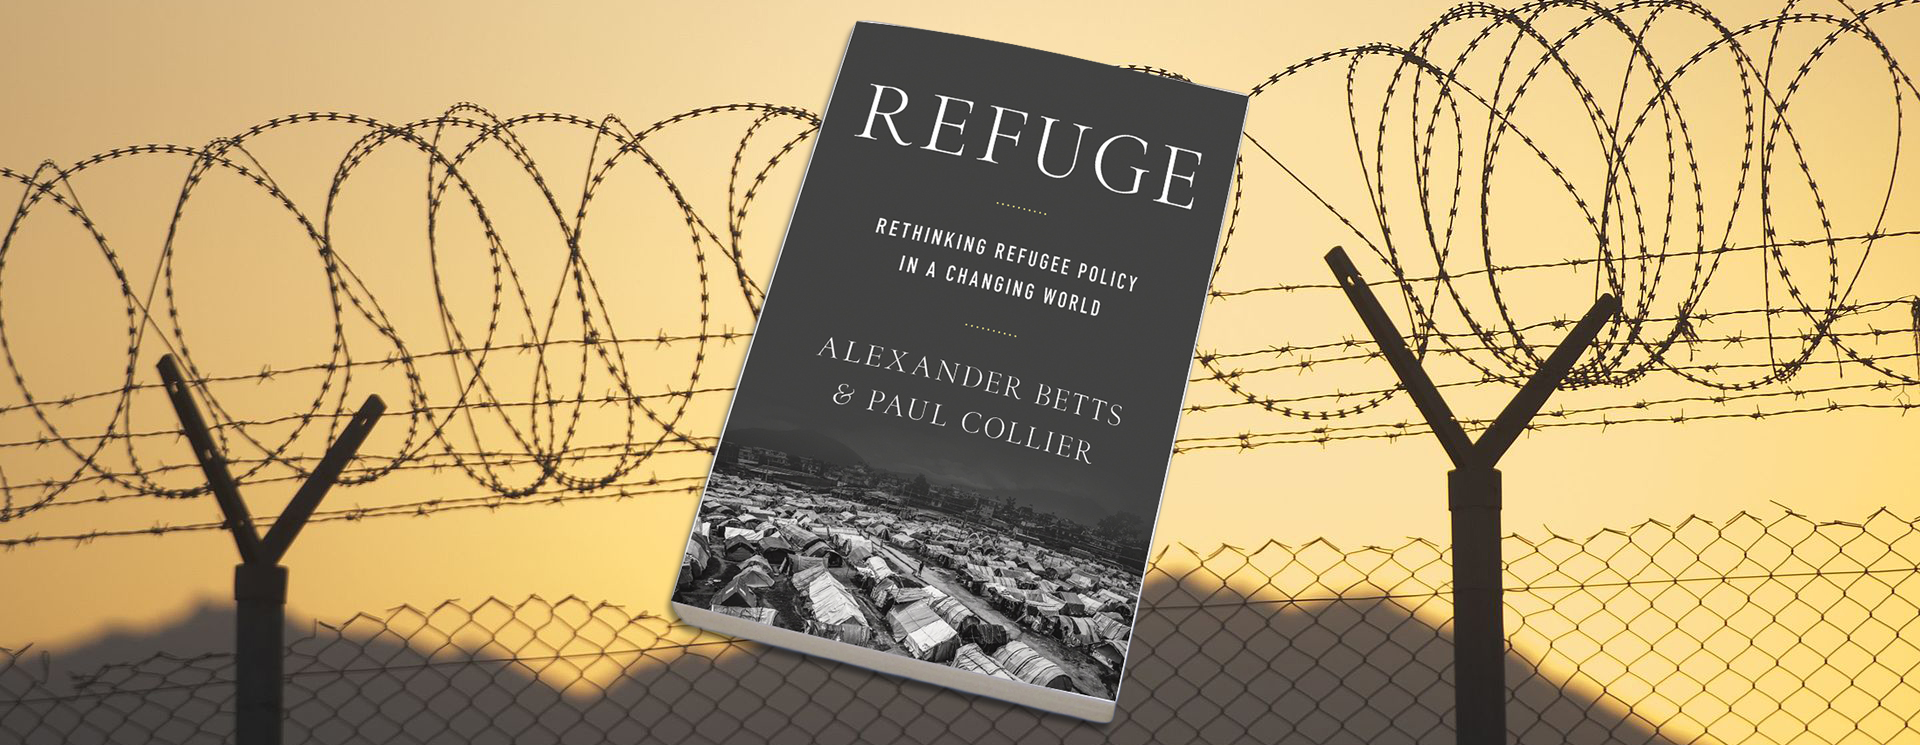 photo:Refuge Book Cover.